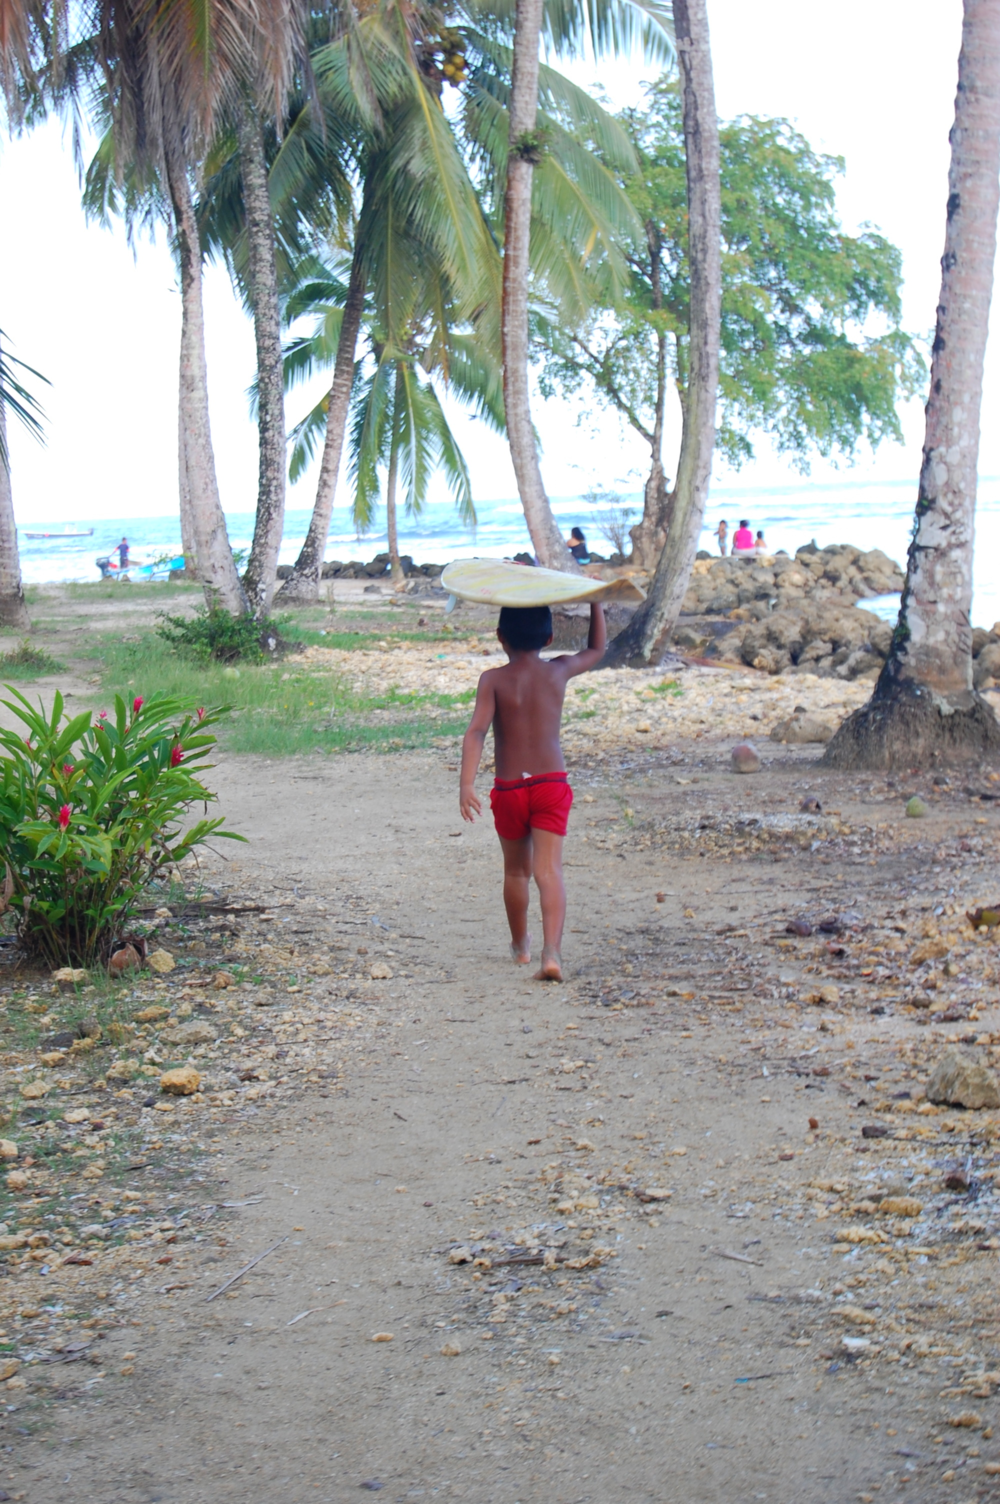 The kids in Bocas seem to learn to walk, then learn to surf- or maybe it's the other way around.